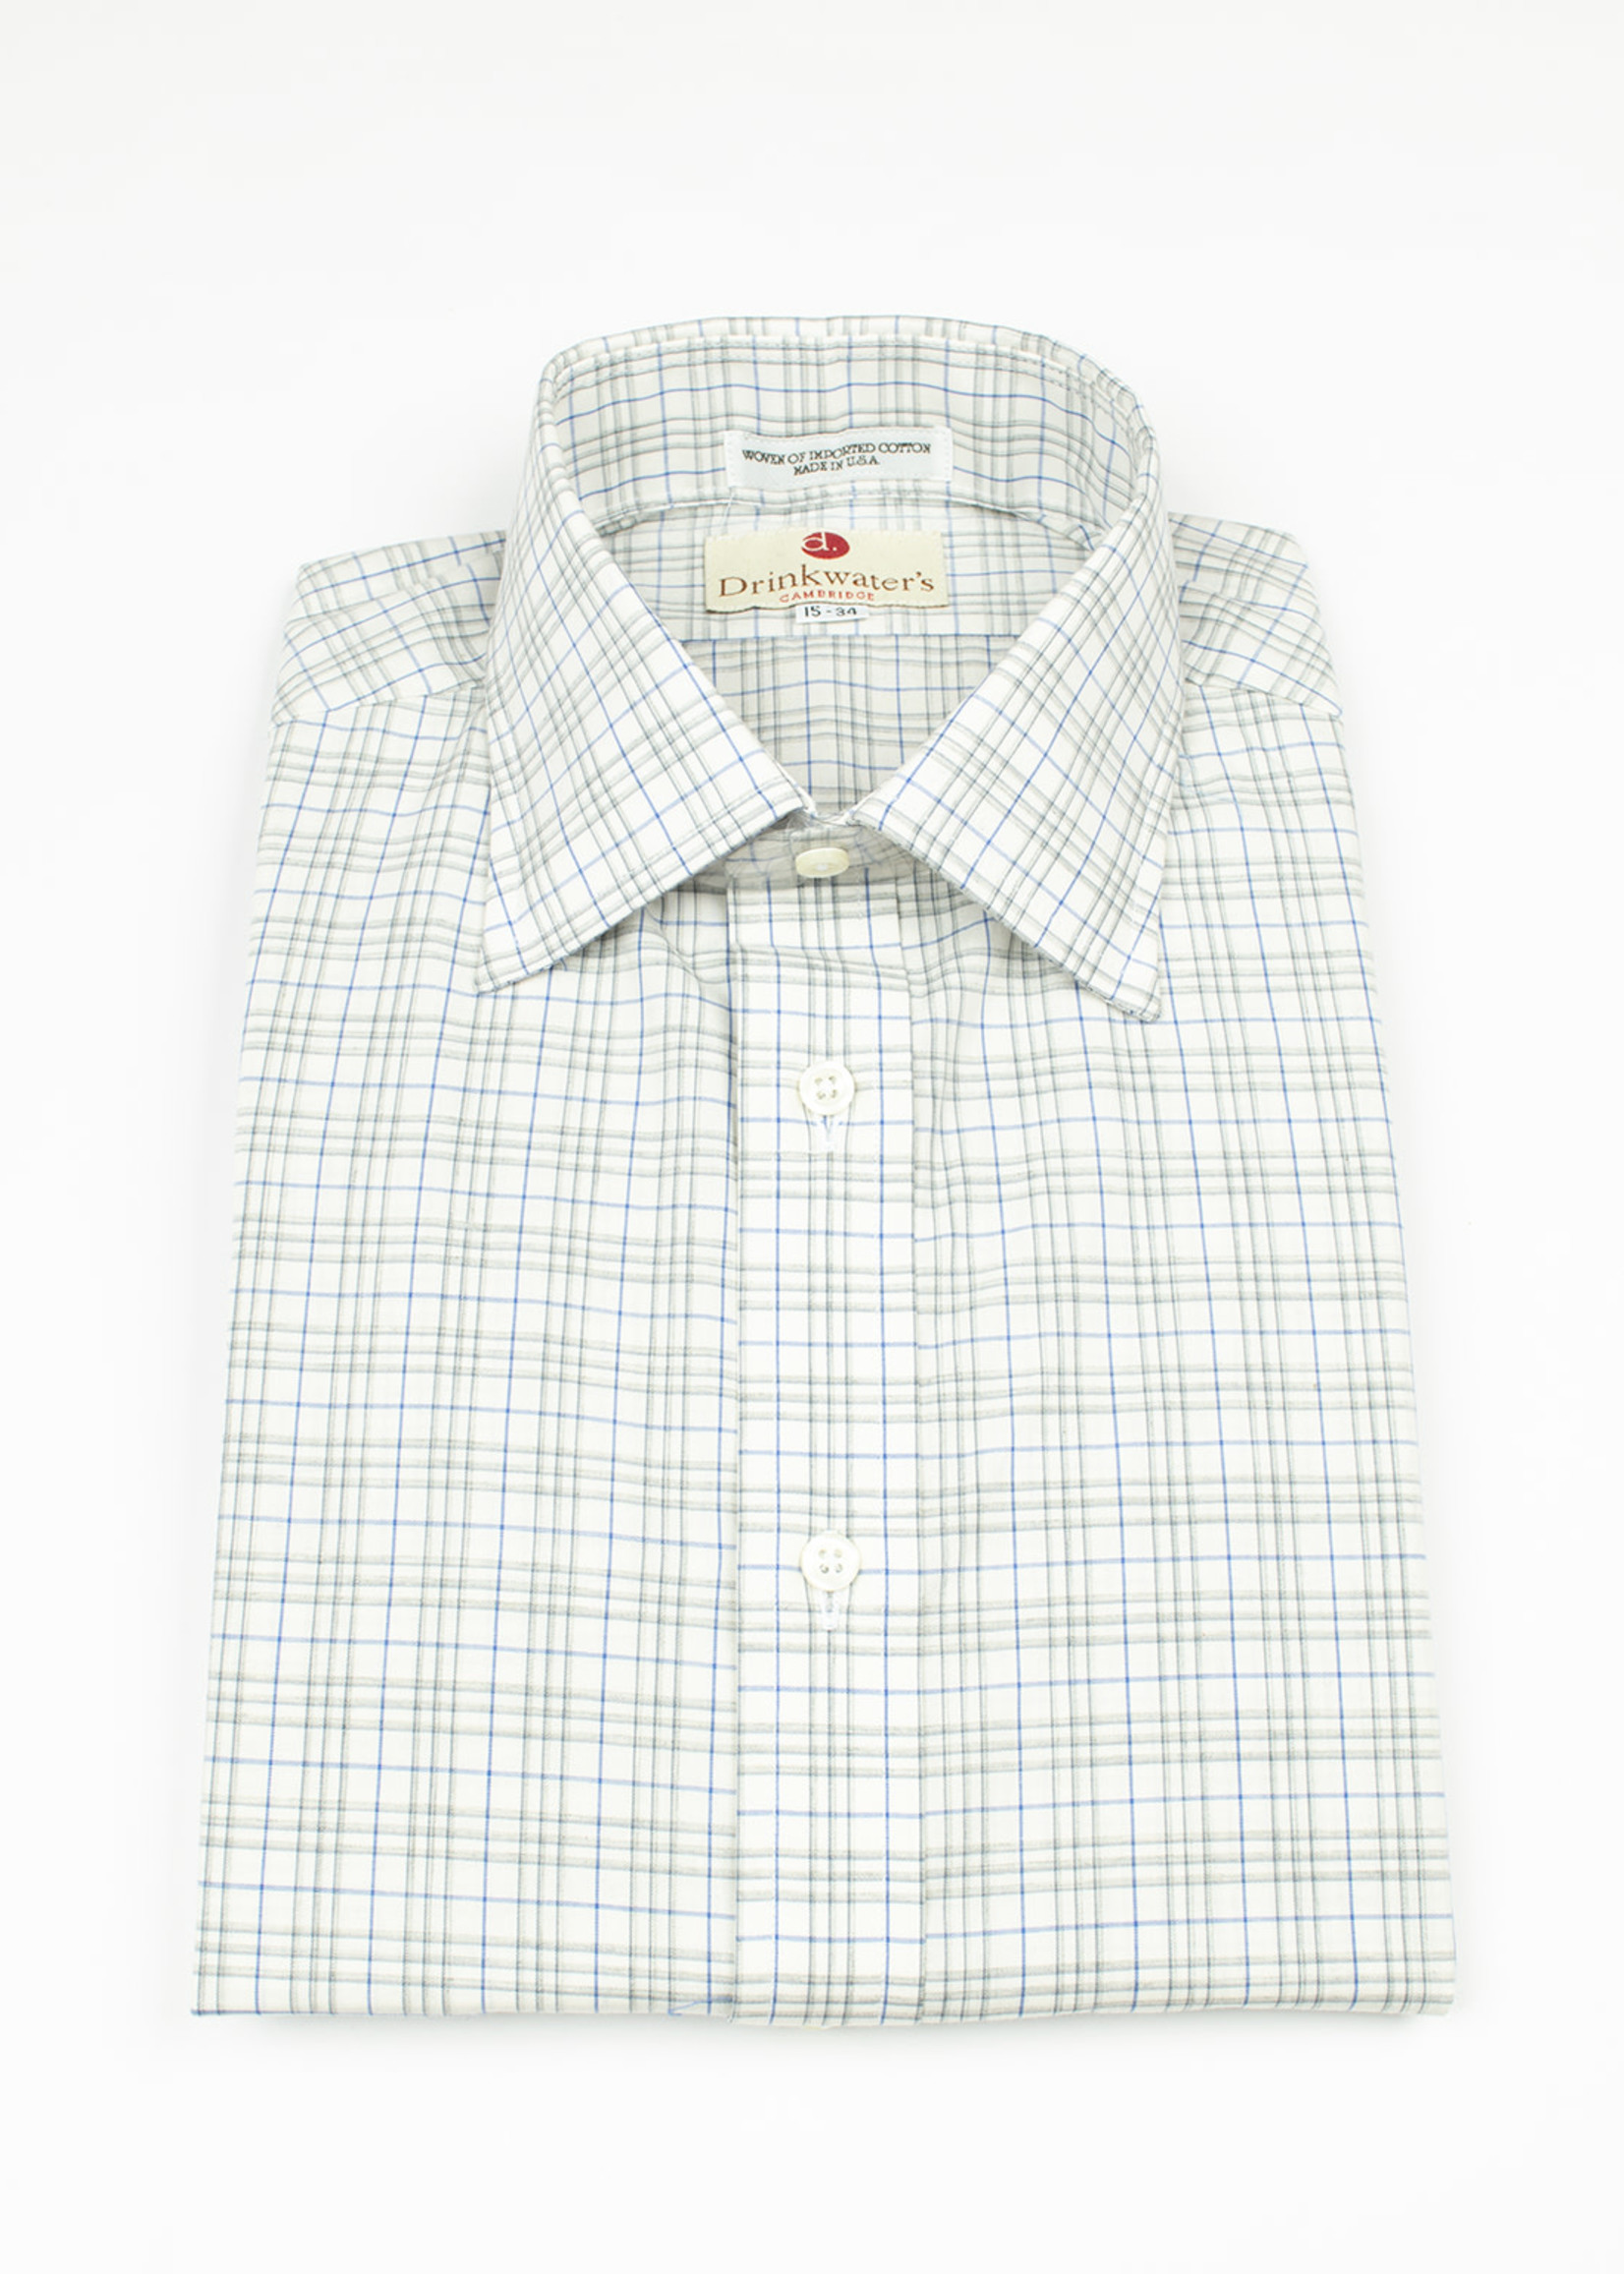 Taupe & Blue Tattersall Spread Collar by Drinkwater's